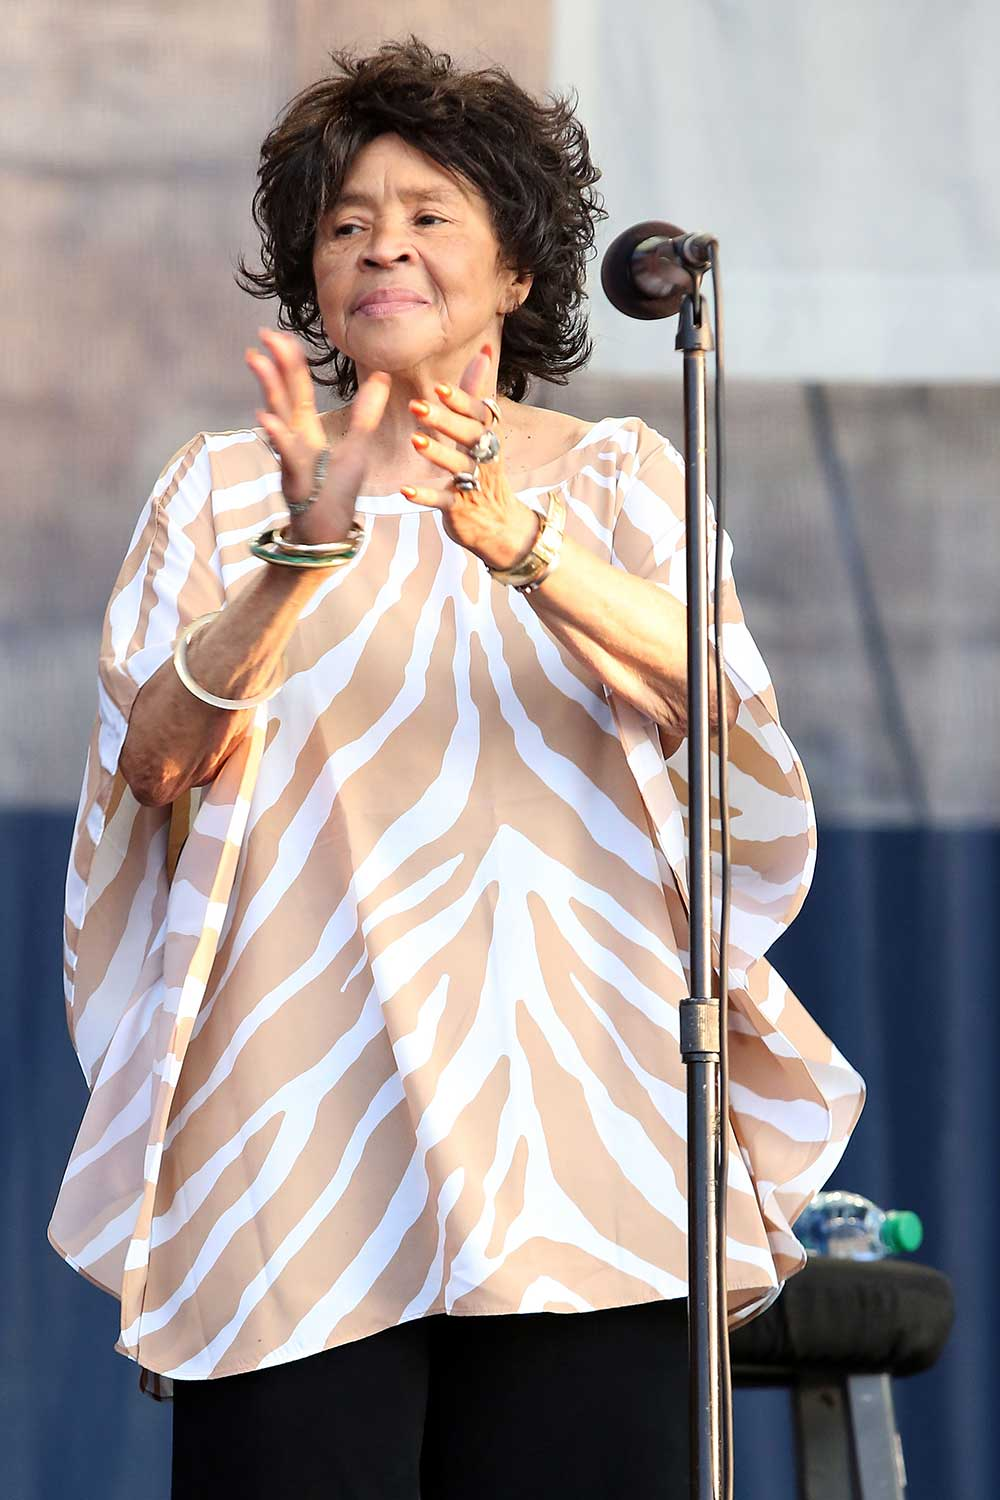 <div class='meta'><div class='origin-logo' data-origin='none'></div><span class='caption-text' data-credit='Taylor Hill/WireImage via Getty'>Yvonne Staples of the family gospel group Staples Singers died at age 80.</span></div>